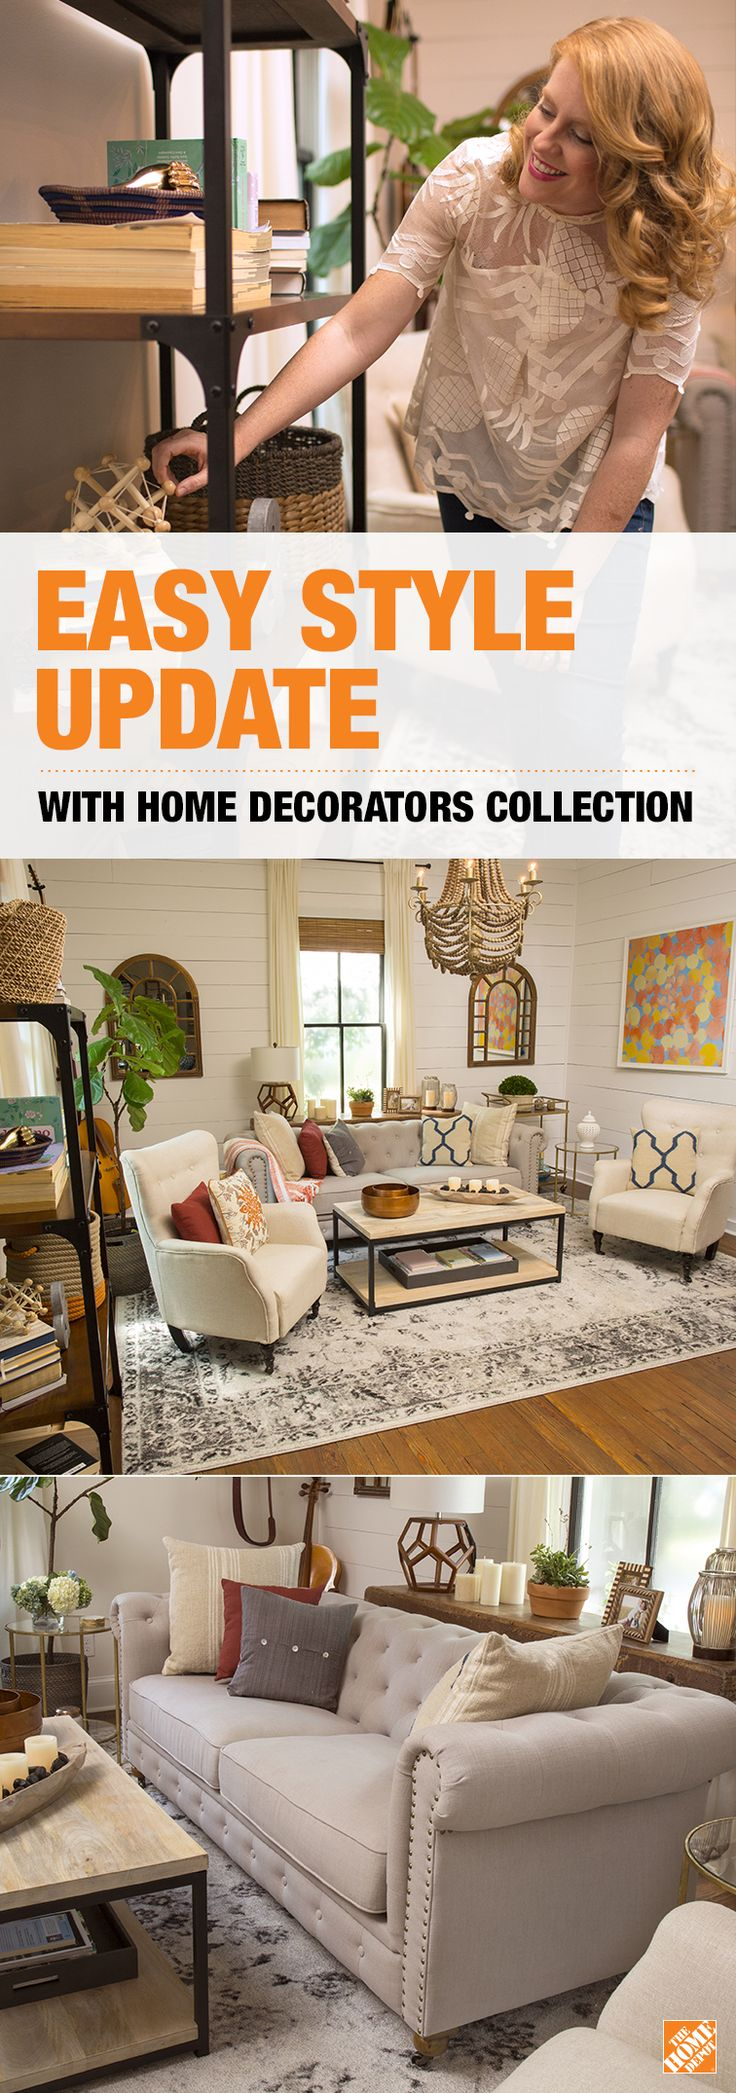 59 best home decorators collection images on pinterest | home